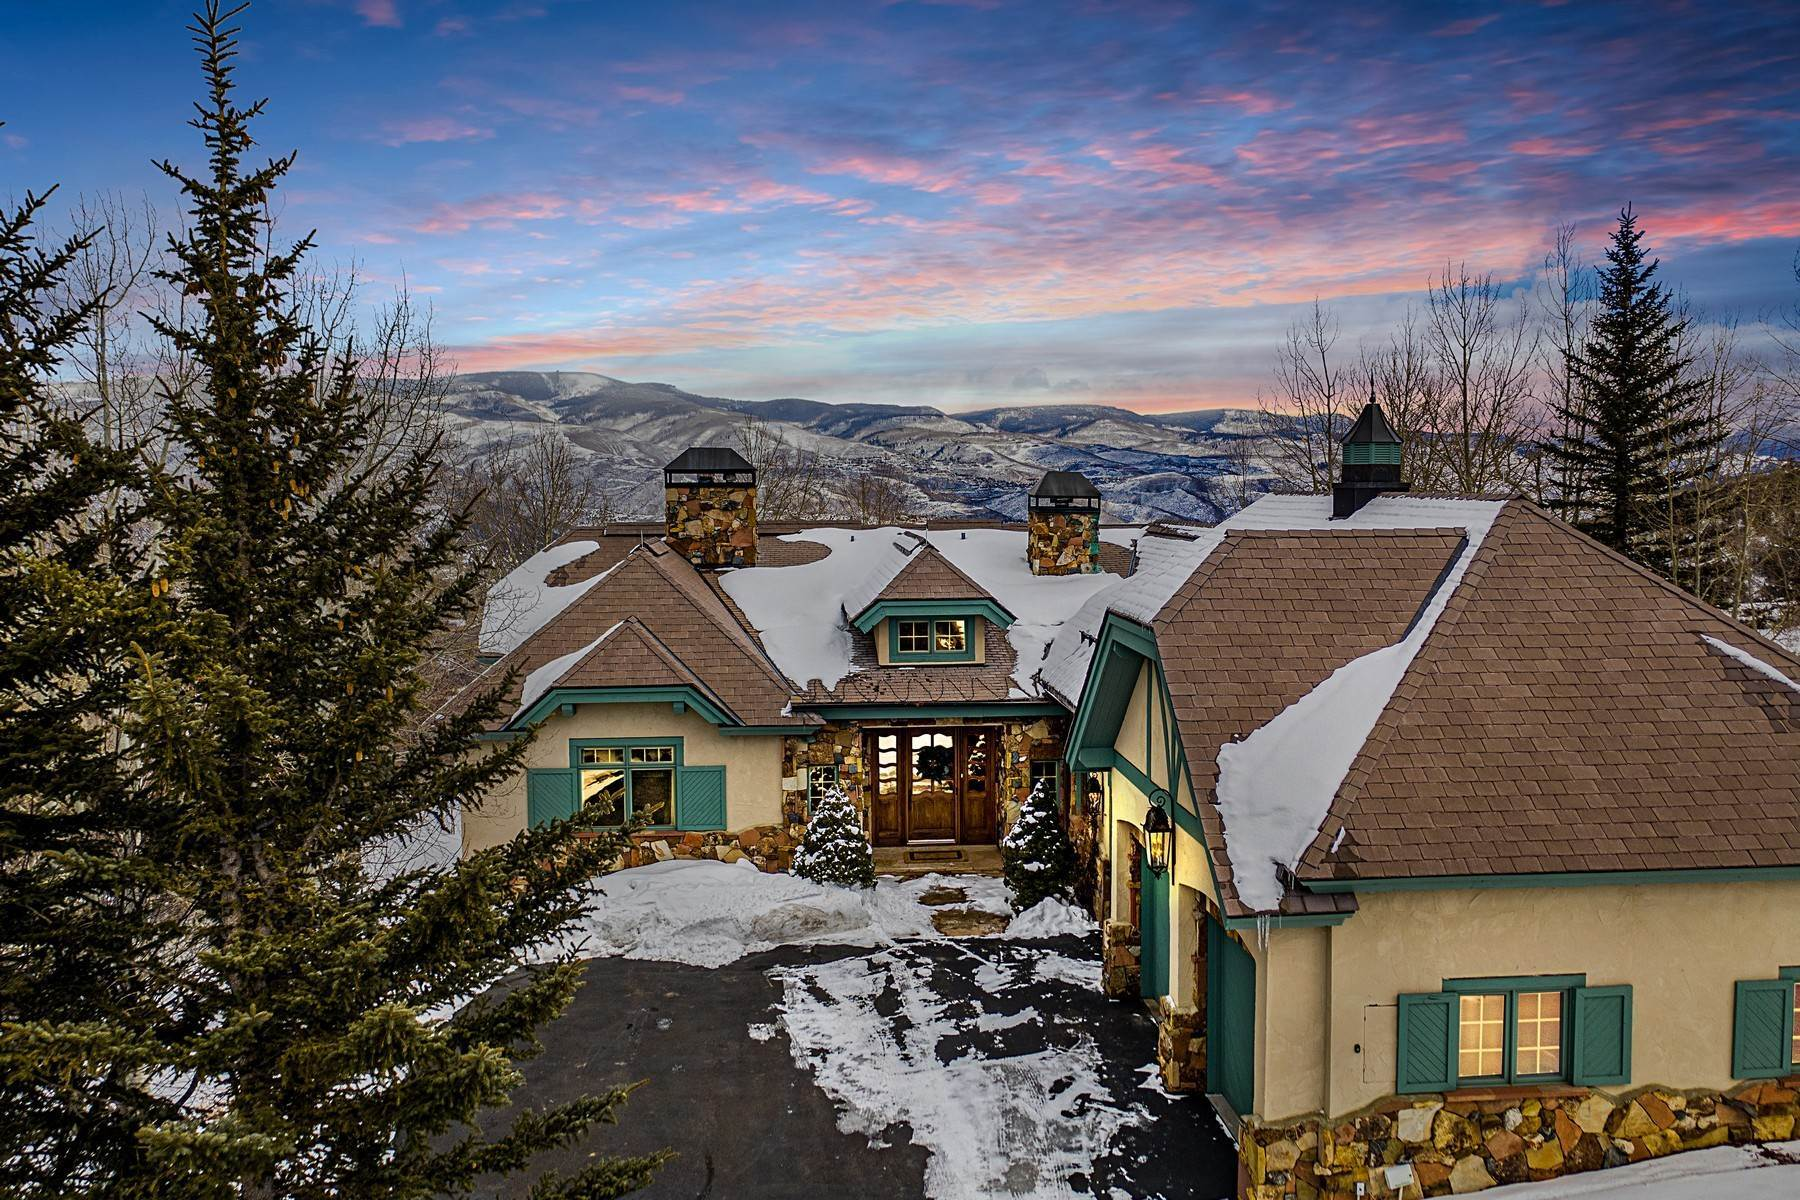 Single Family Homes for Active at Magnificent Luxury Home in Cordillera The Divide 205 Granada Hill Edwards, Colorado 81632 United States